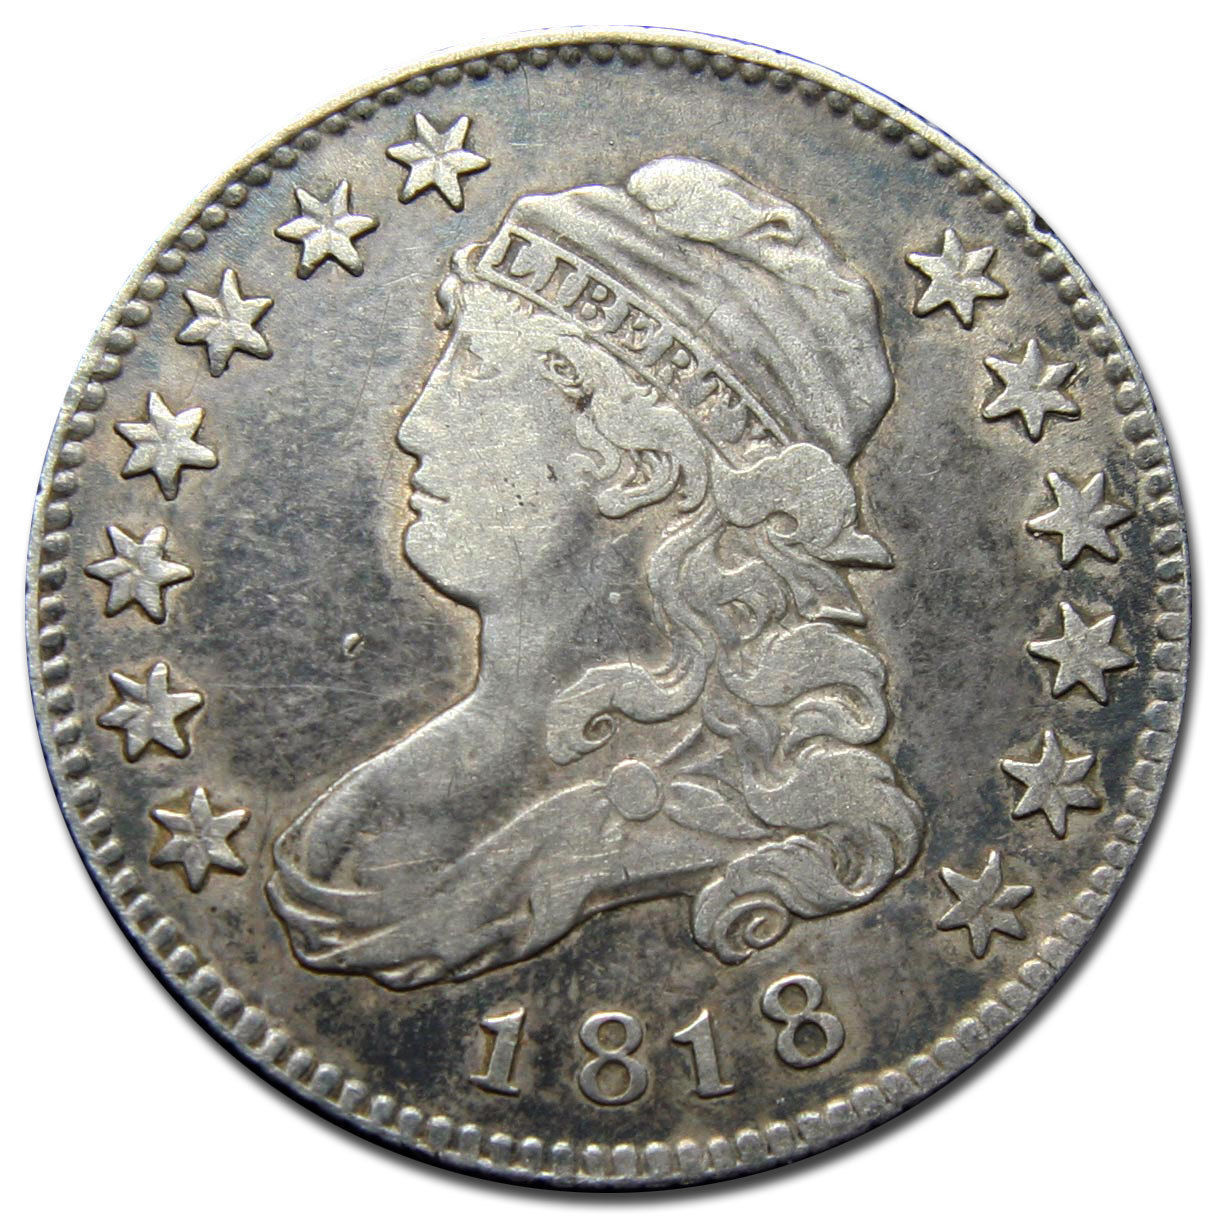 1818 Capped Bust Quarter Dollar 25¢ Coin Lot# MZ 2840